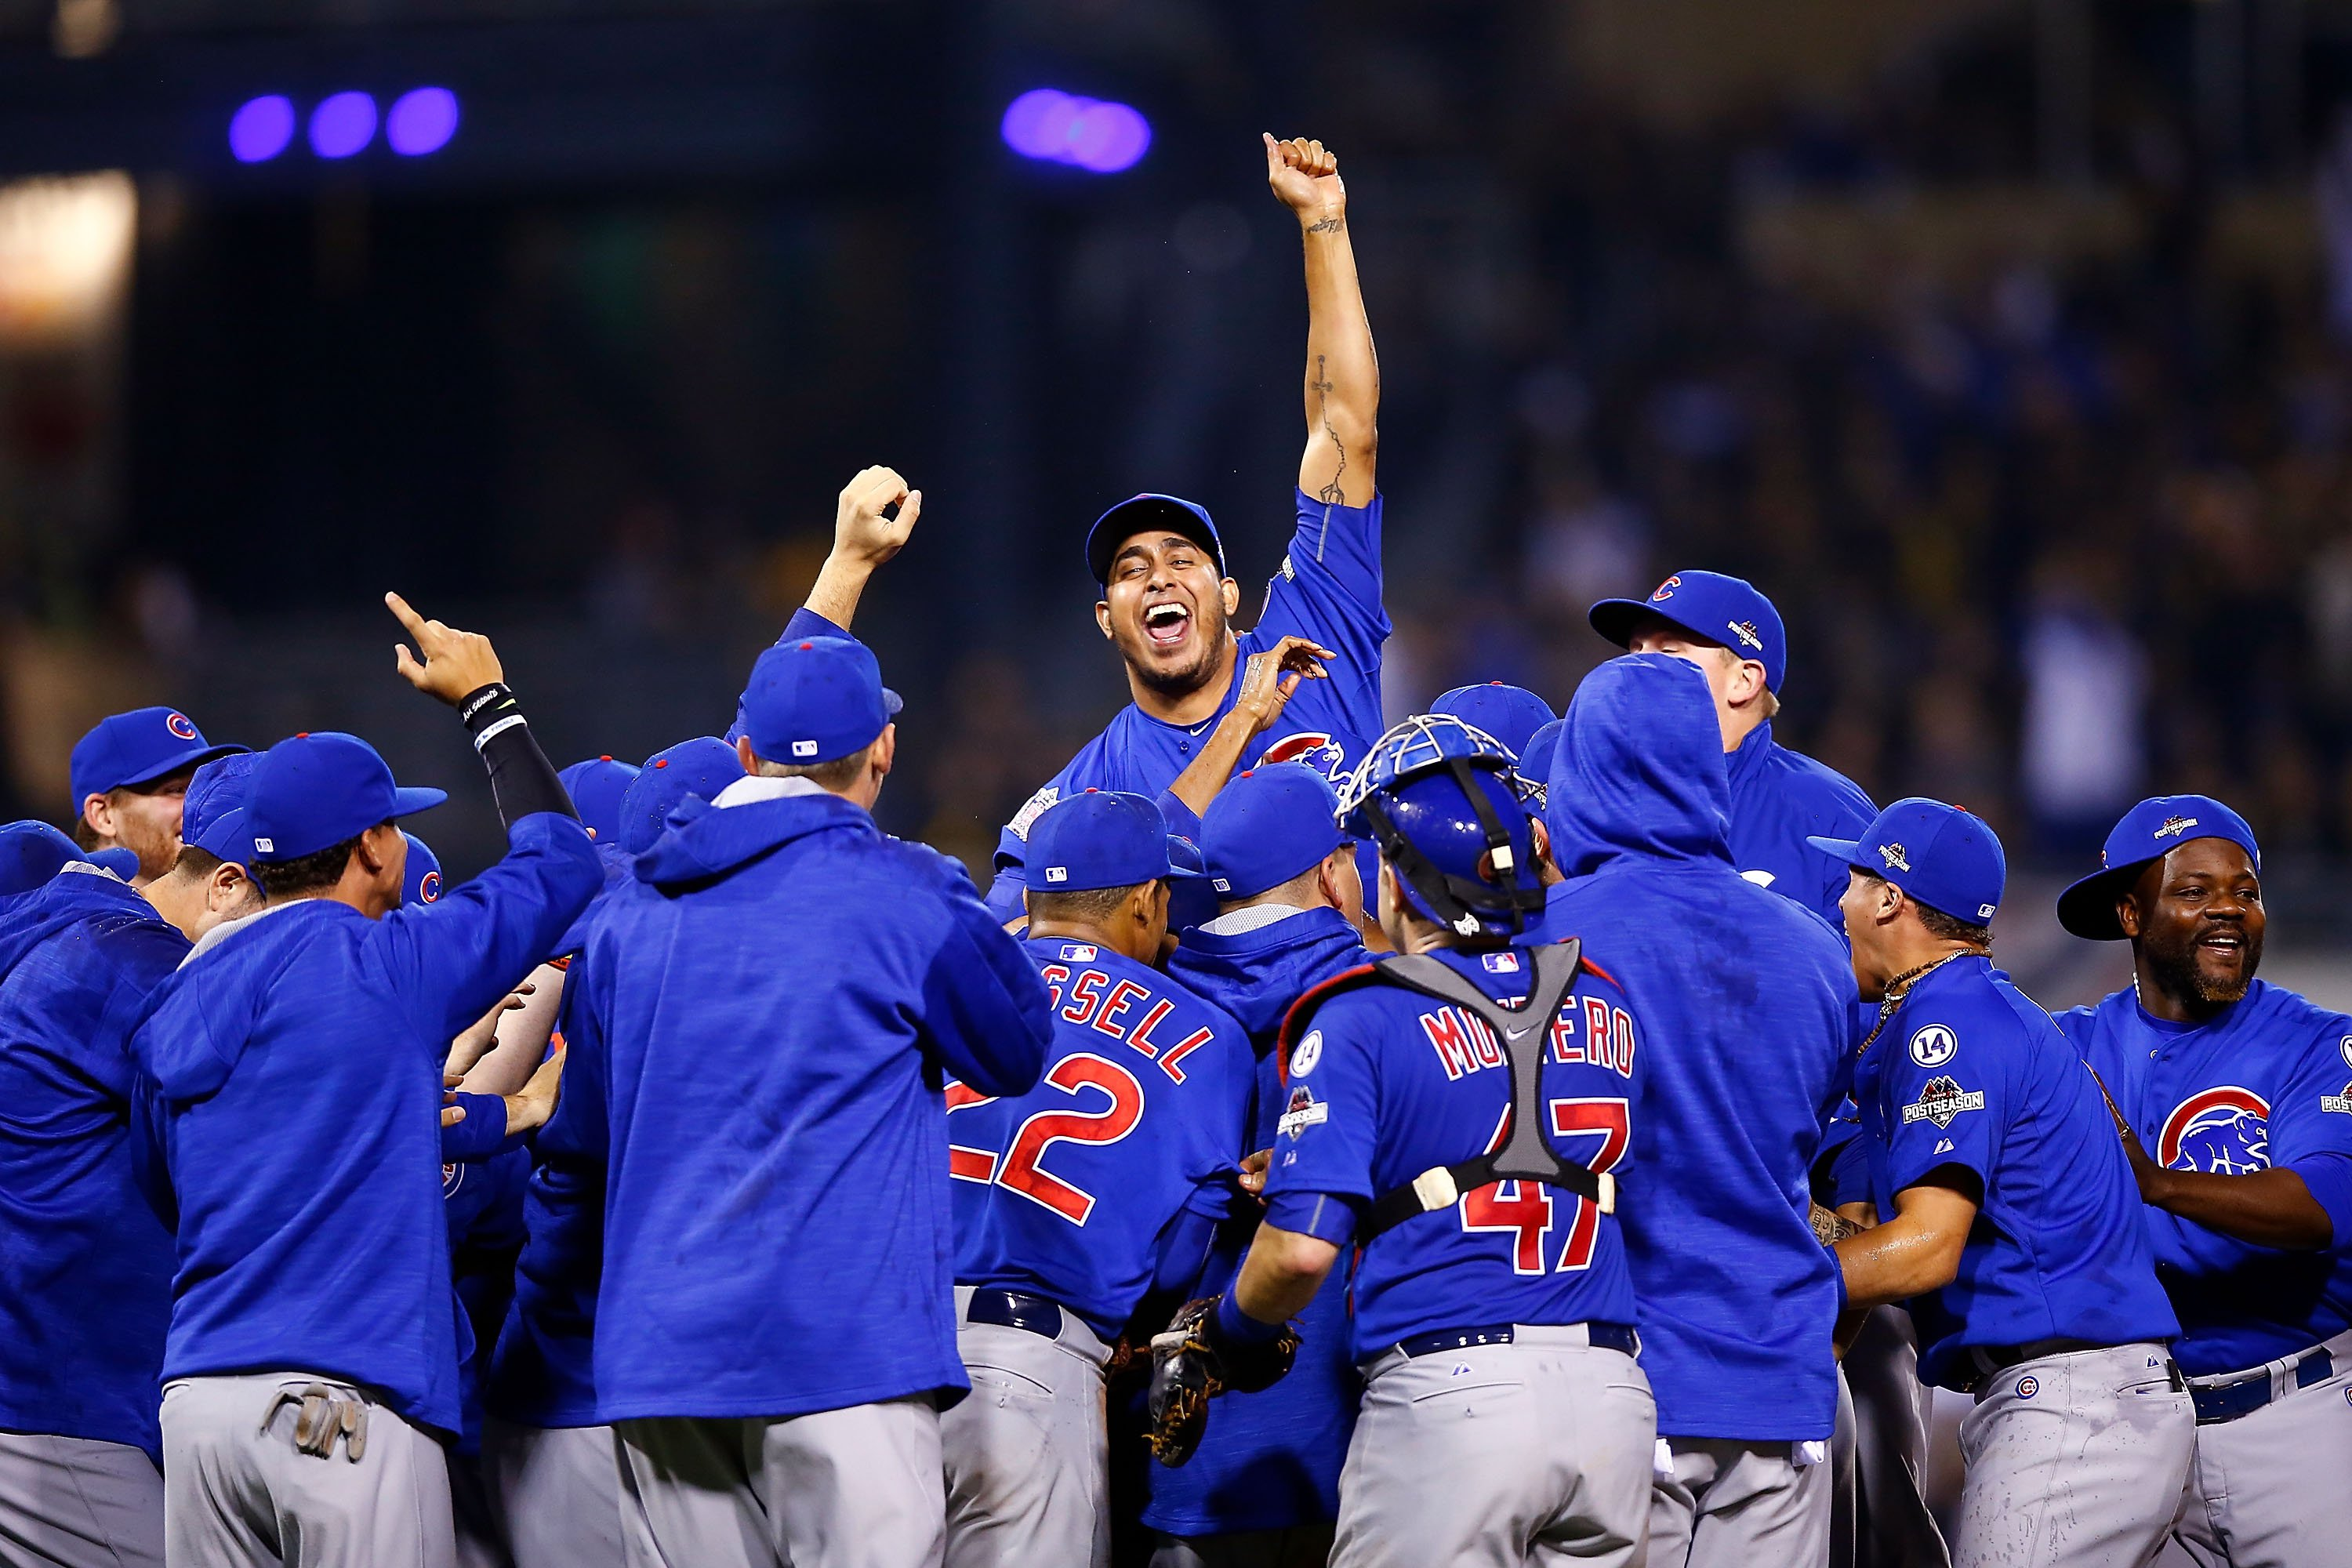 Chicago Cubs End 108-Year Drought, Win World Series